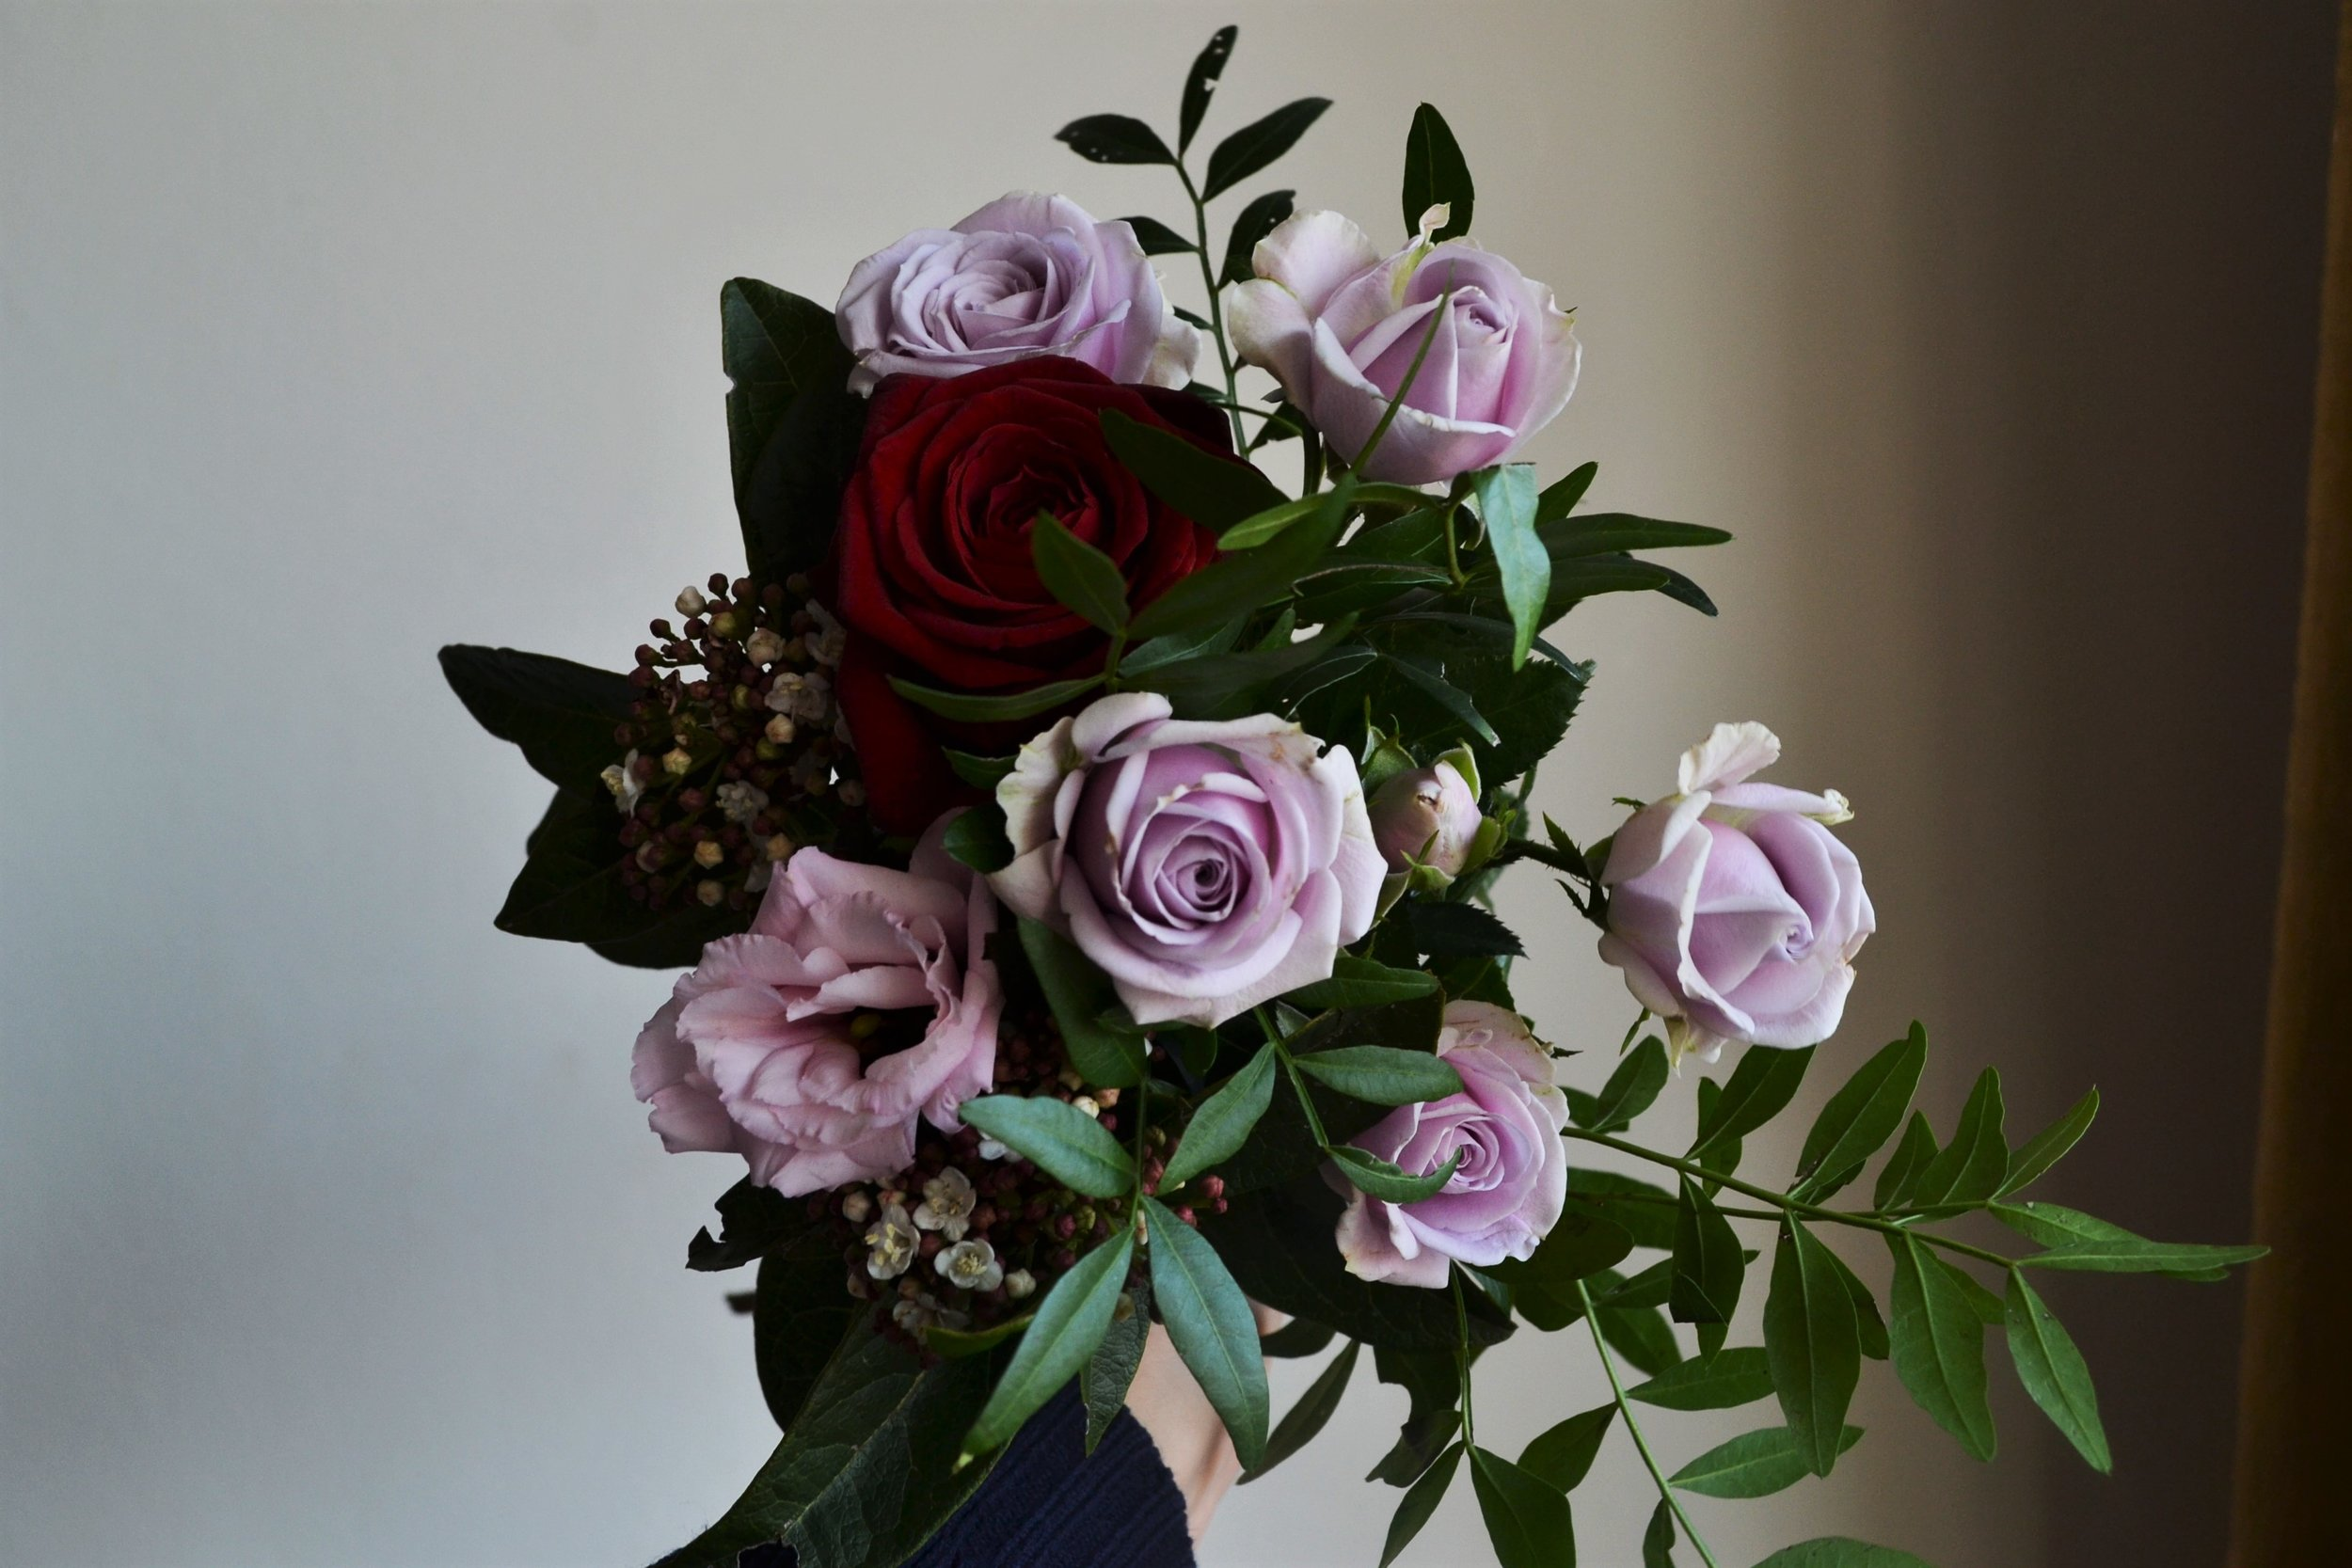 Webb-and-Farrer-Brighton-Florist-Sussex-Wedding-Flowers-Blush-Pink-Burgundy-Bridal-Bouquet (4).JPG